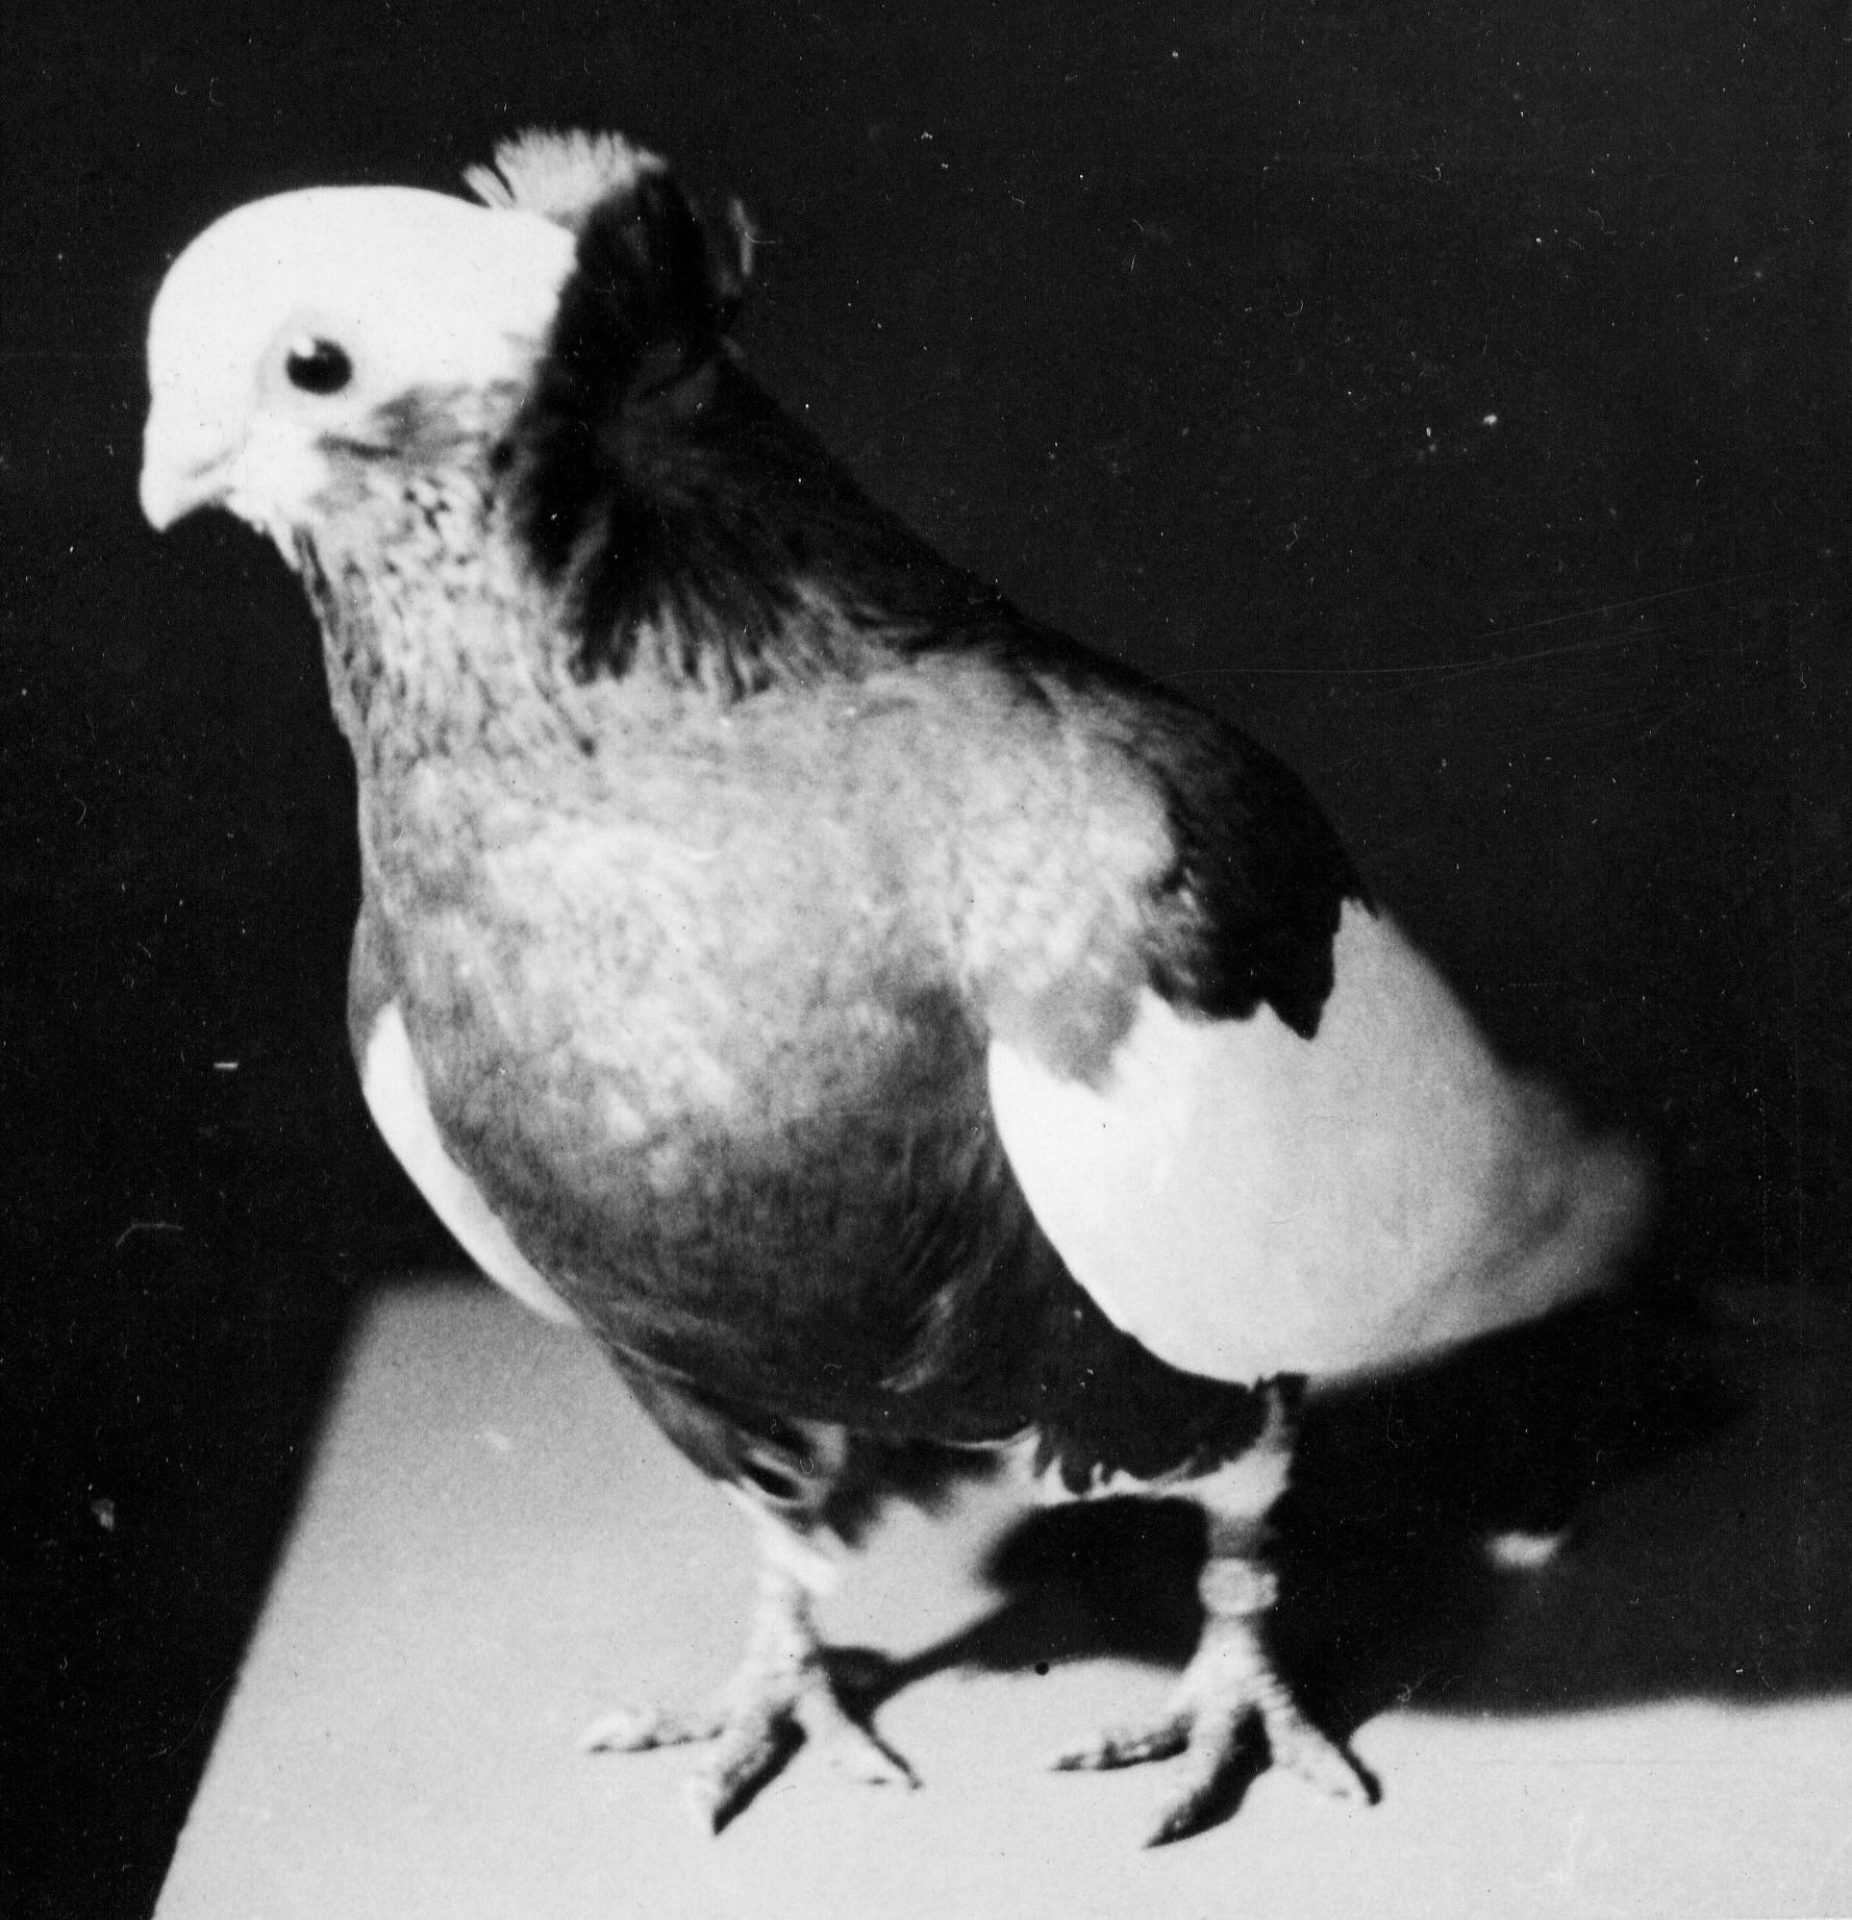 Petra Feriancová, Series Creator – From the Archive of O. Ferianc, New Breeds 1949-1952, 2008, (107/112)